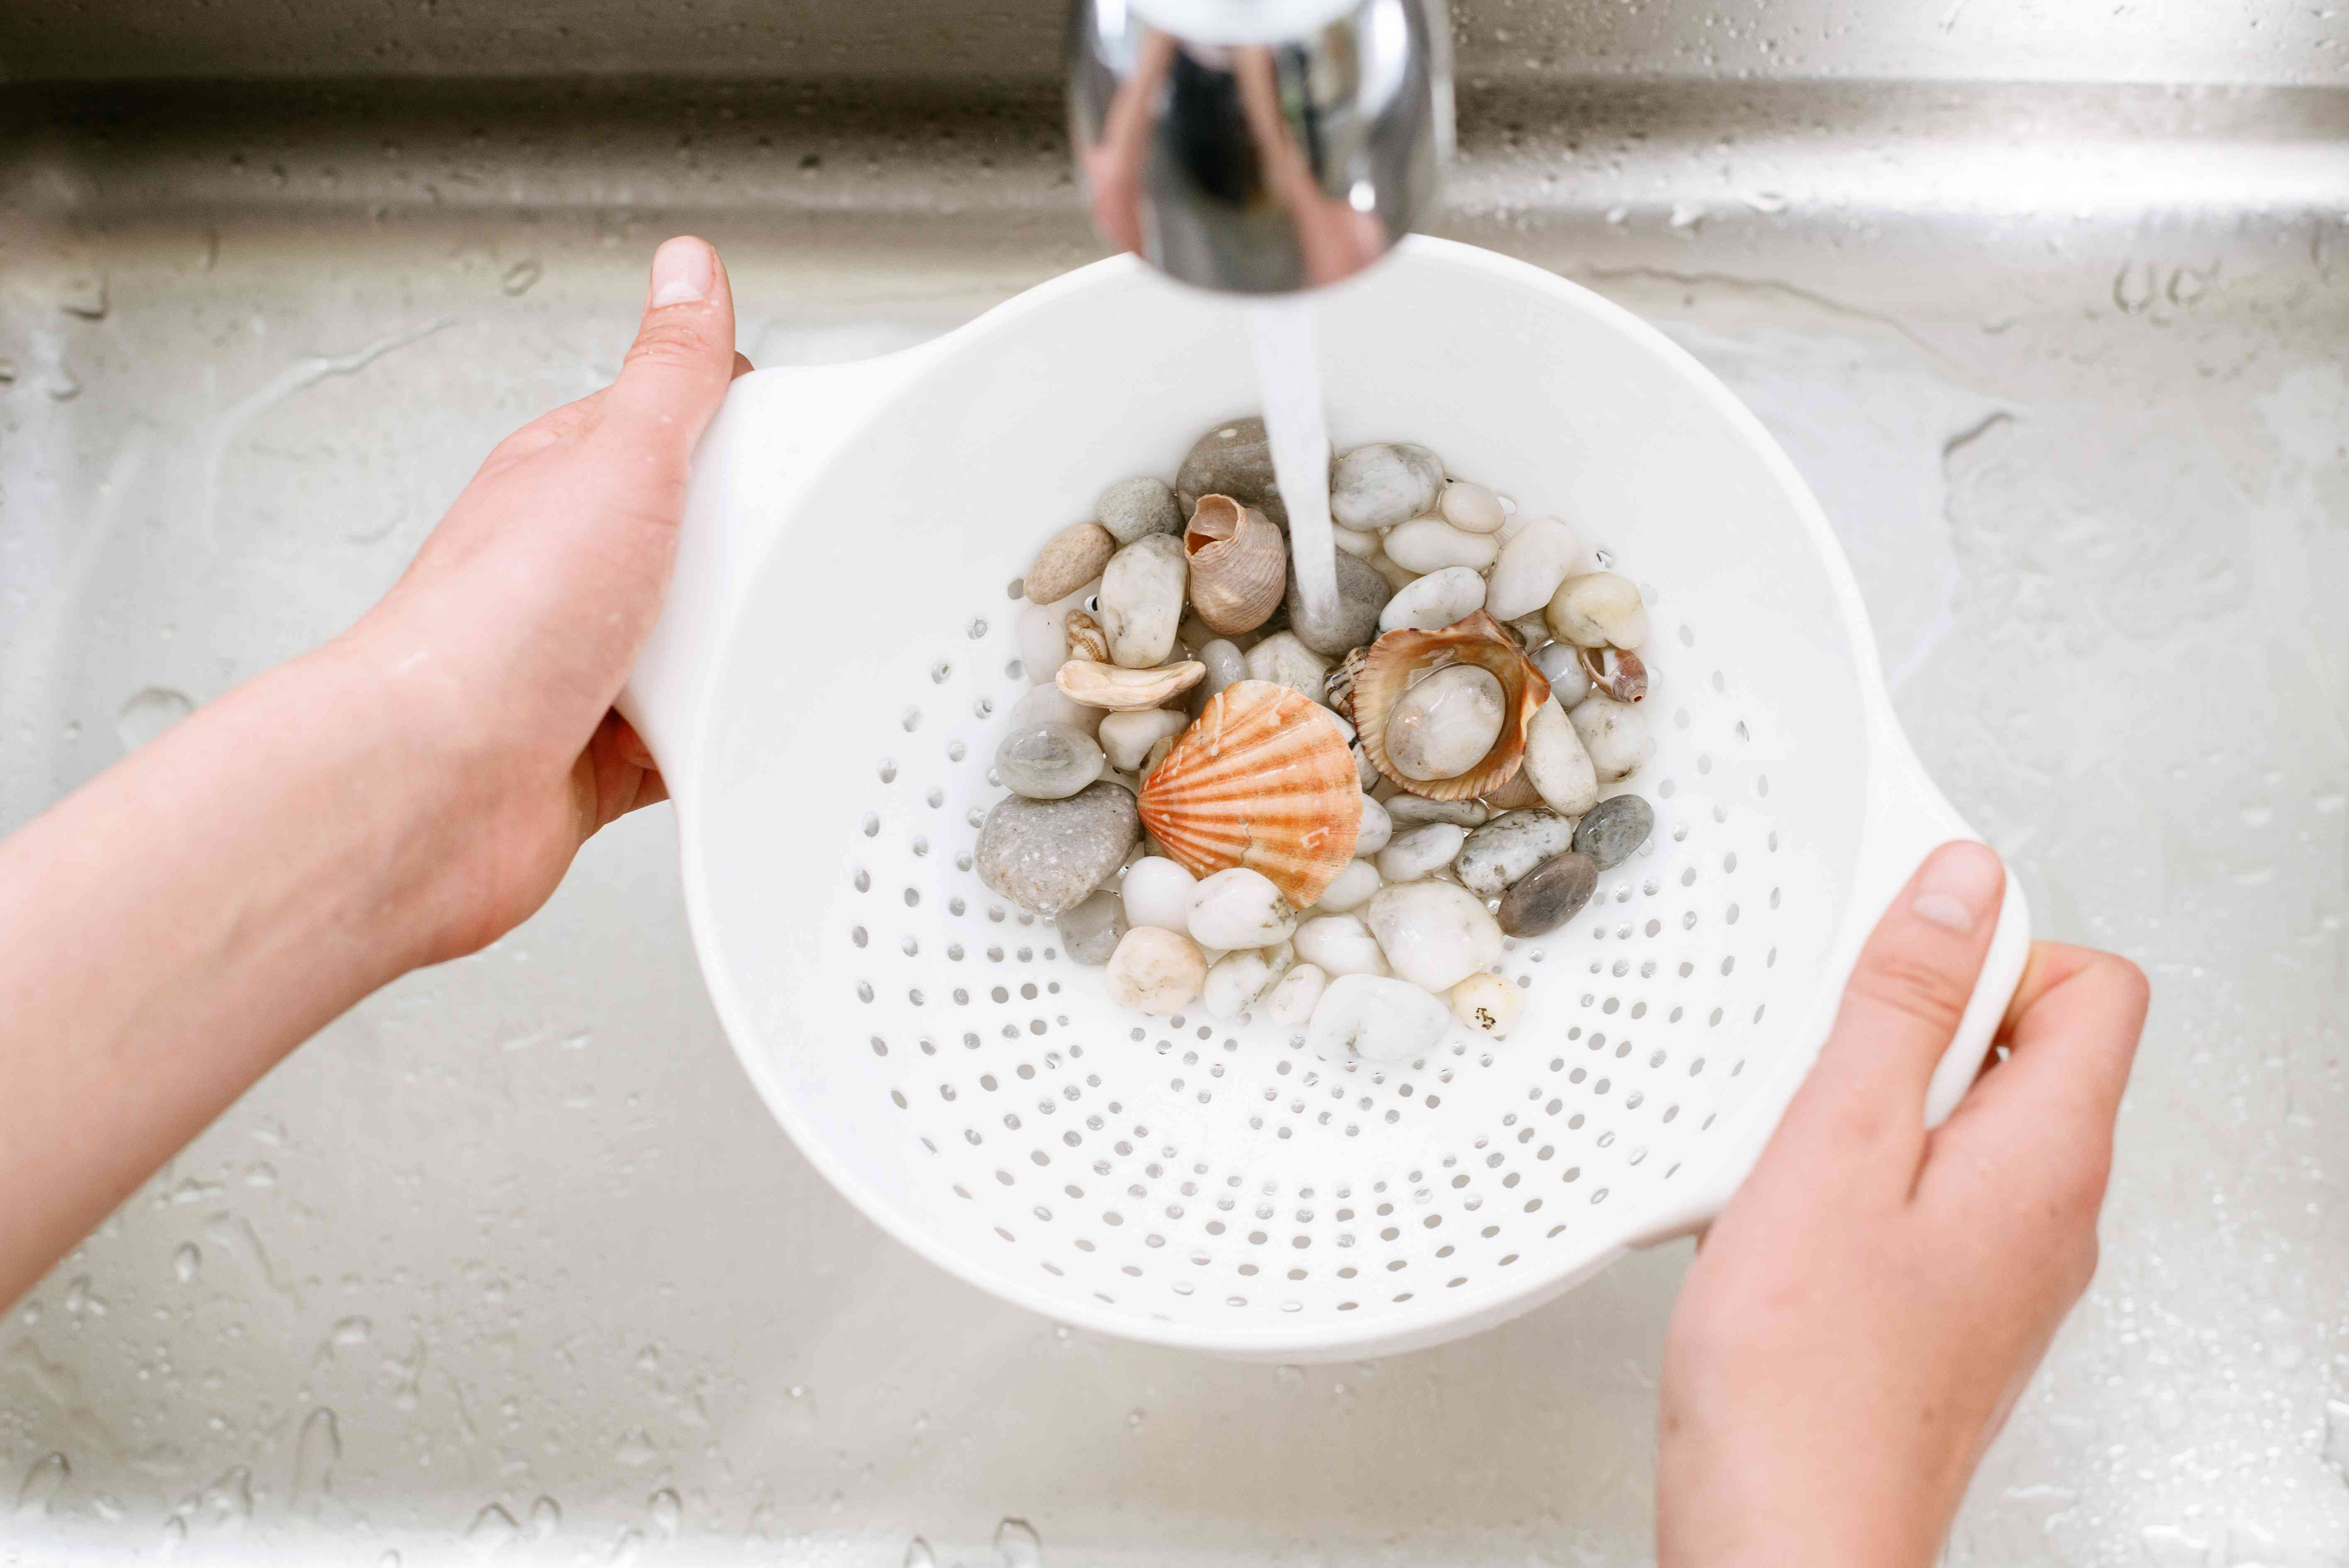 Fishbowl decorations rinsed under running faucet with warm water and white strainer